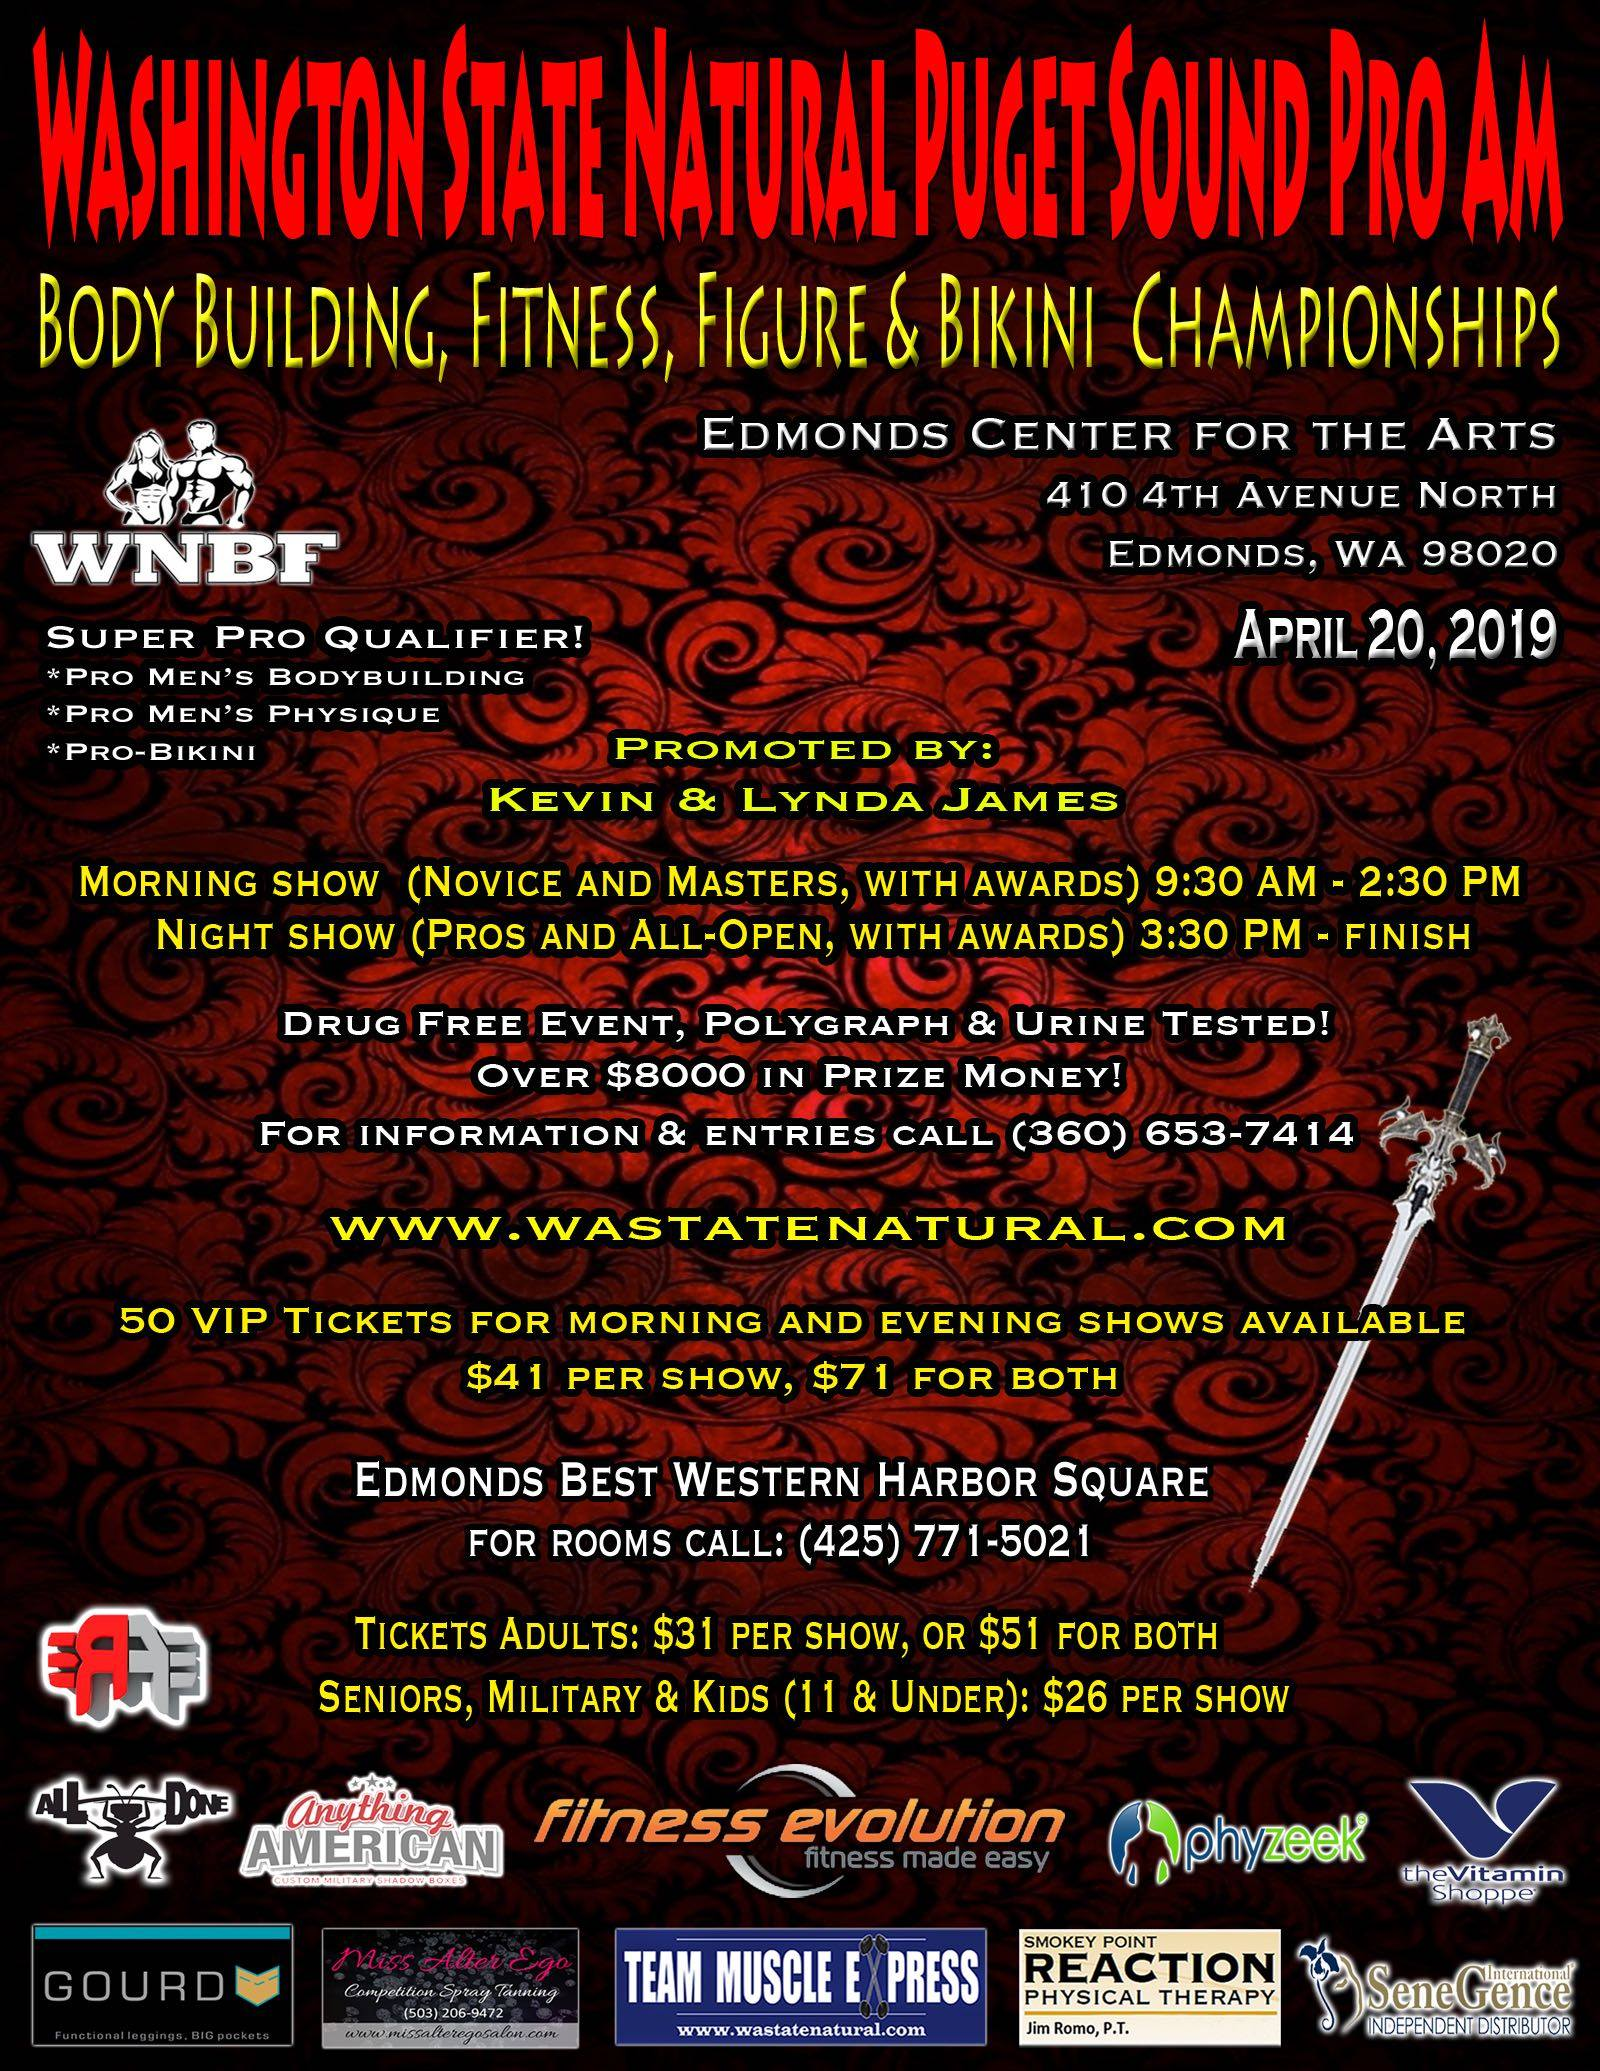 WNBF Pro and INBF Amateur Washington State Pro Am Edmonds Washington WNBF Pro Qualifier